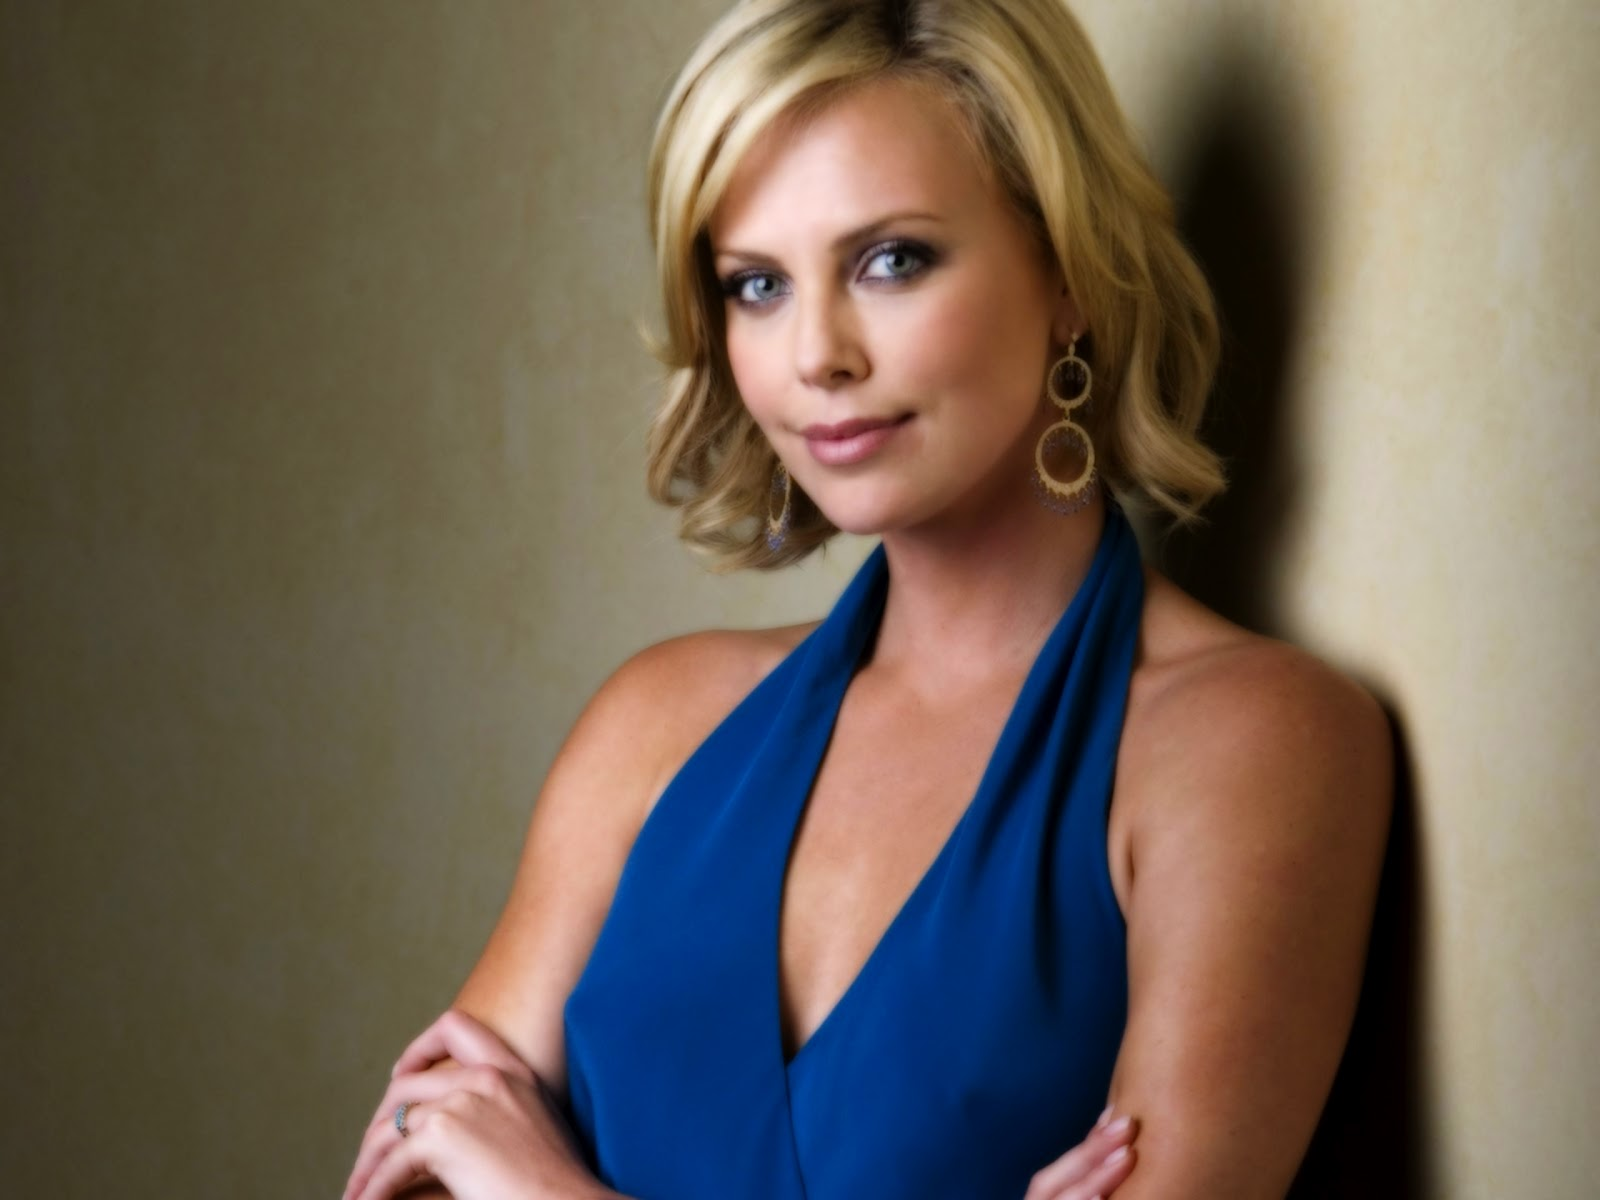 wallpaperstopick: Charlize Theron Charlize Theron